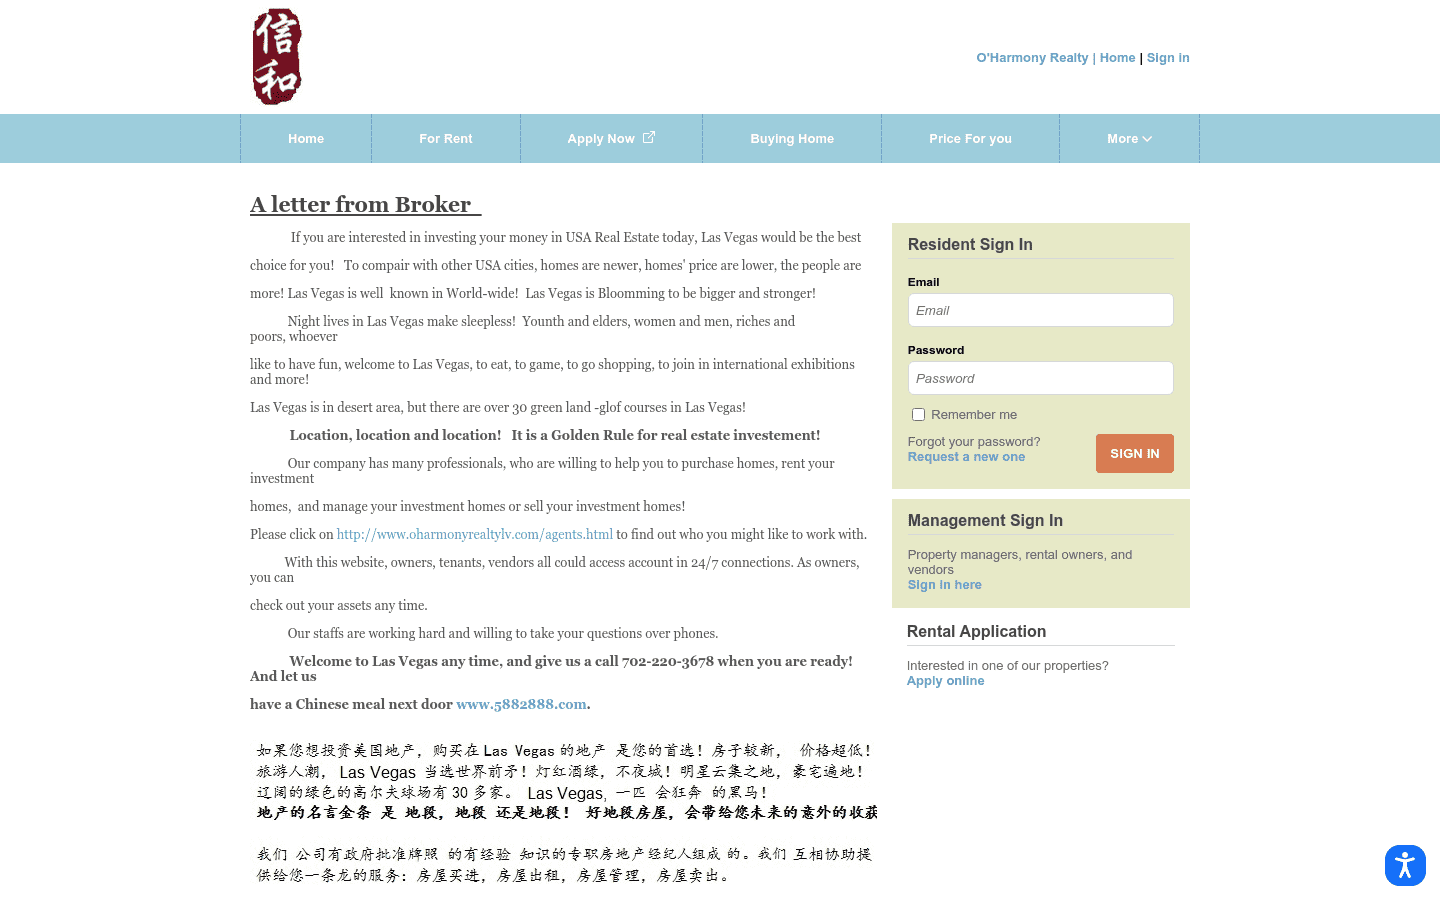 O Harmony Realty reviews and complaints